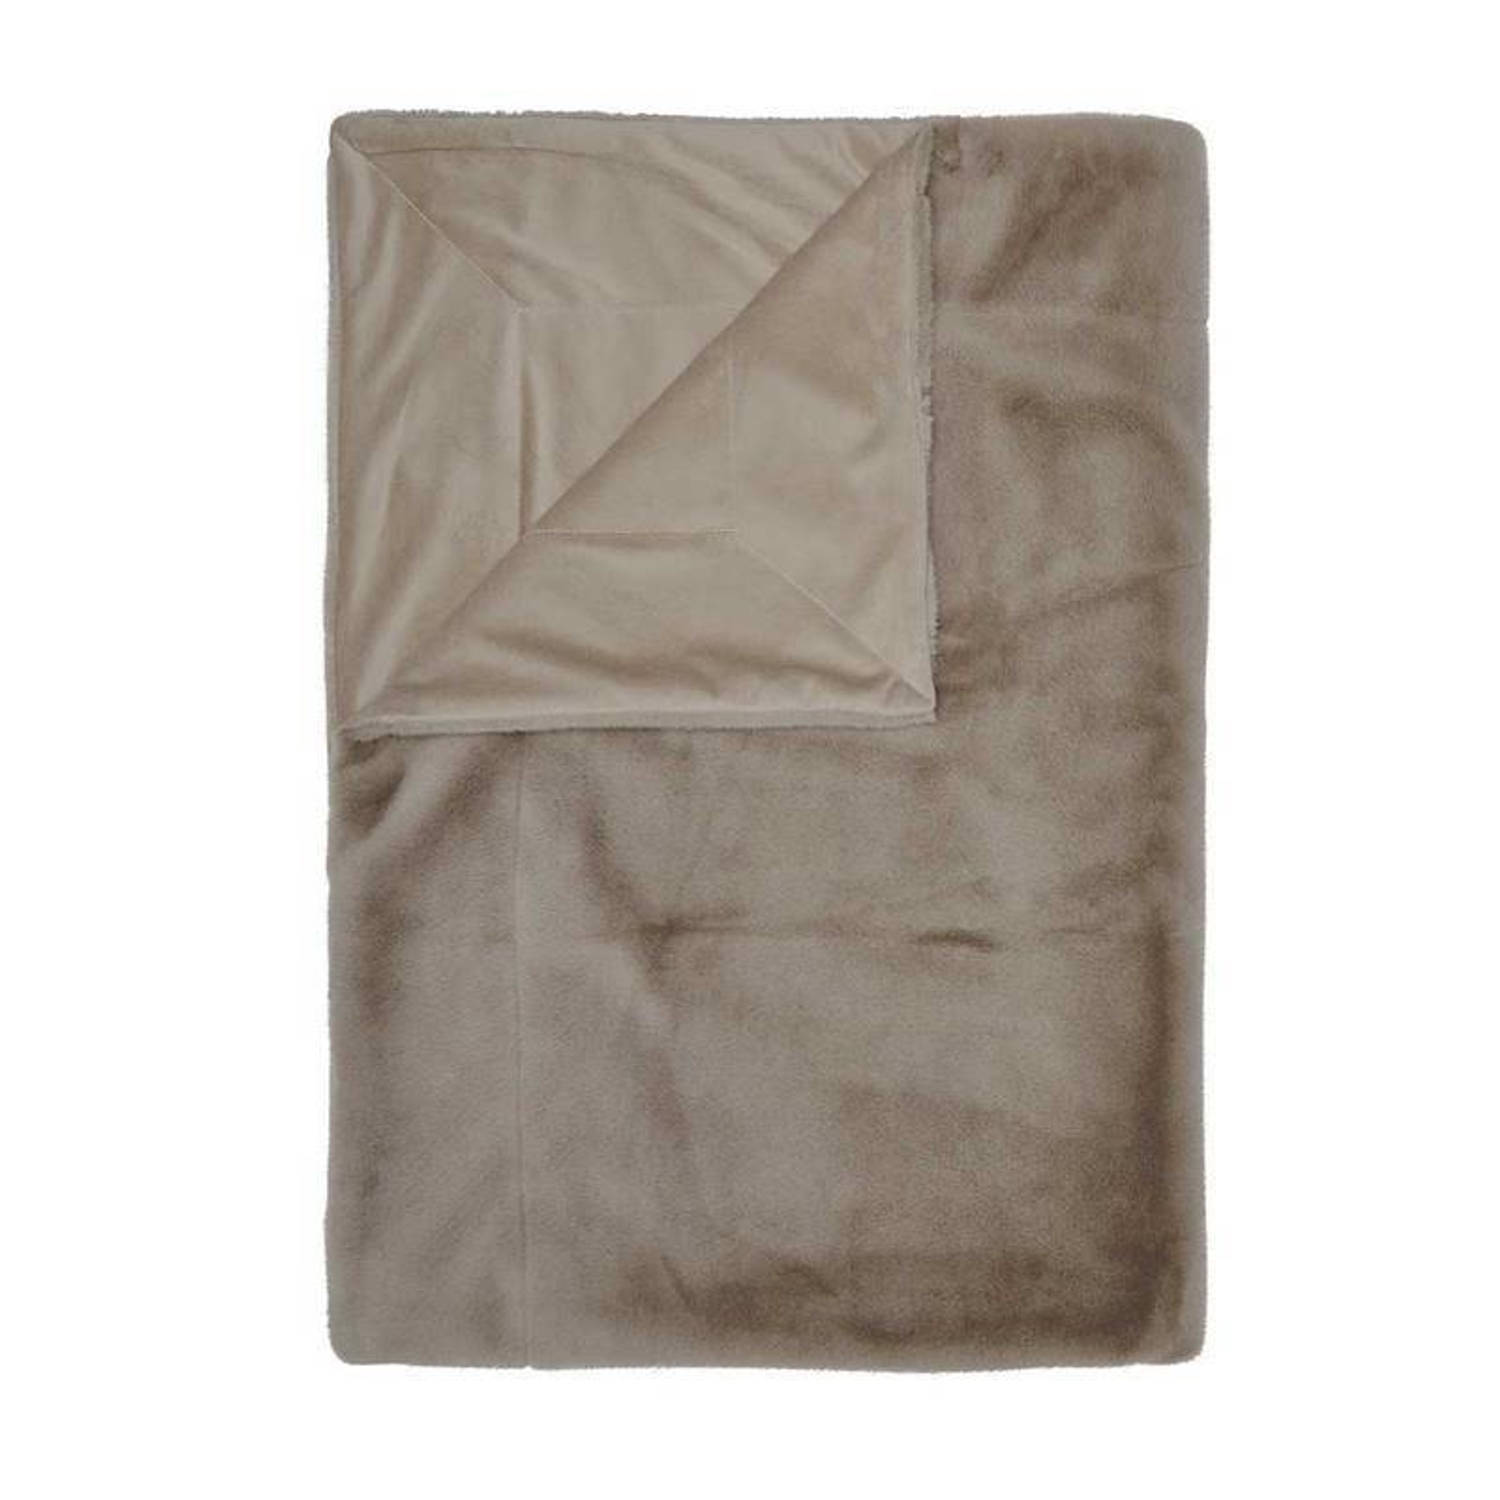 Essenza Furry plaid - 100% polyester - 150x200 cm - Taupe